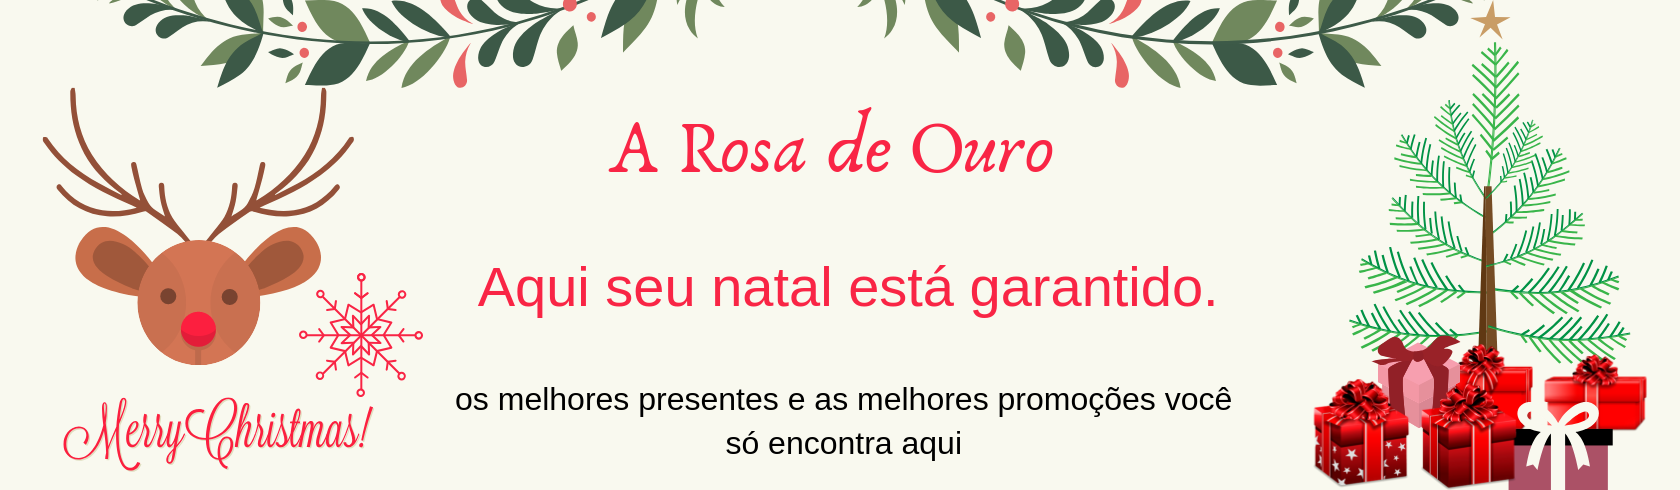 data/banners/a-rosa-de-ouro.png